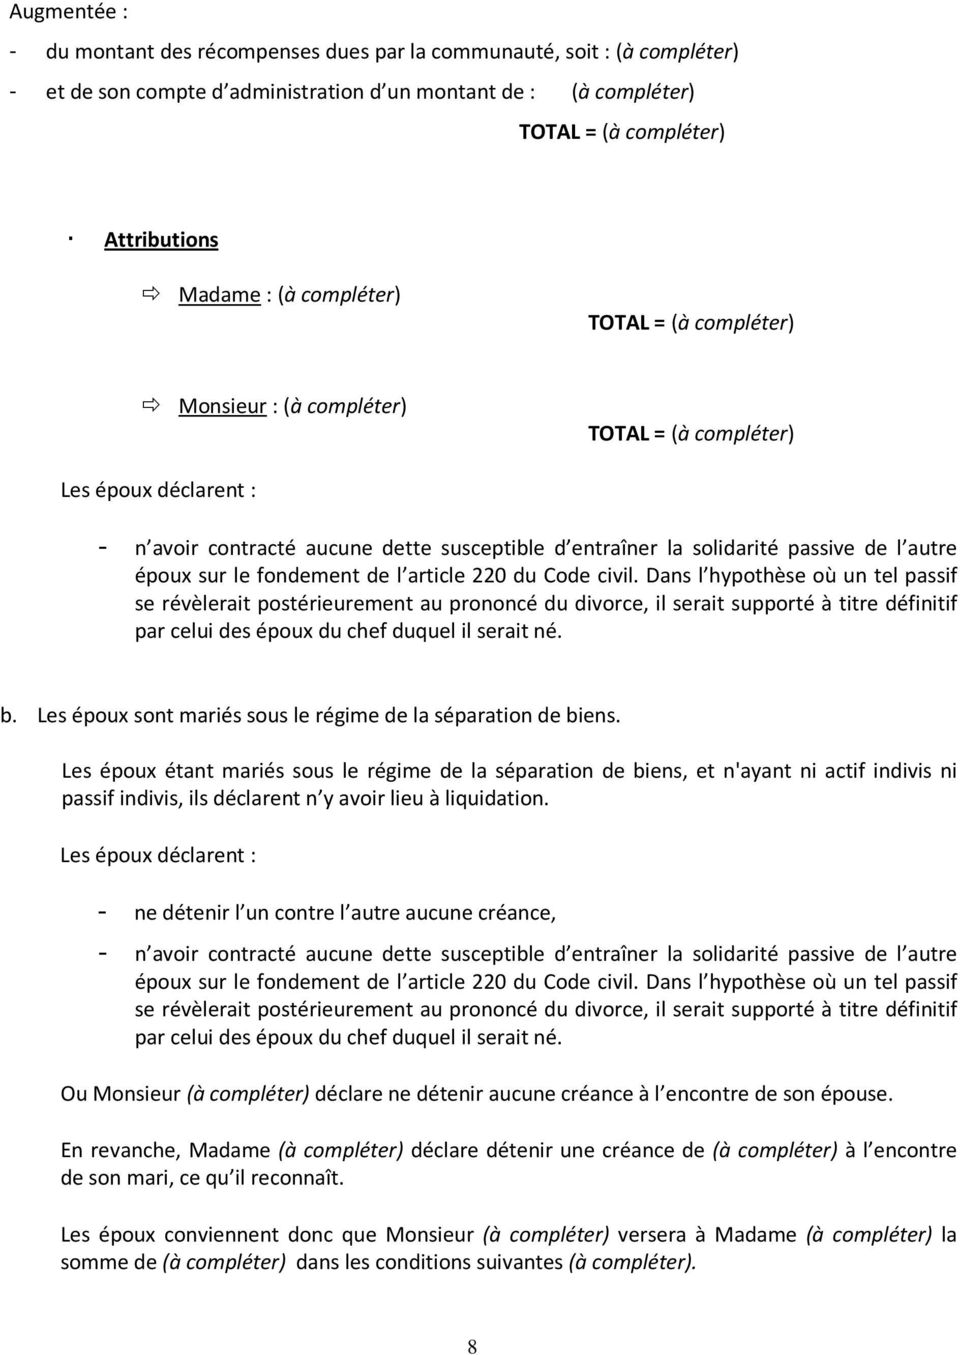 Convention Portant Reglement Complet Des Effets Du Divorce Pdf